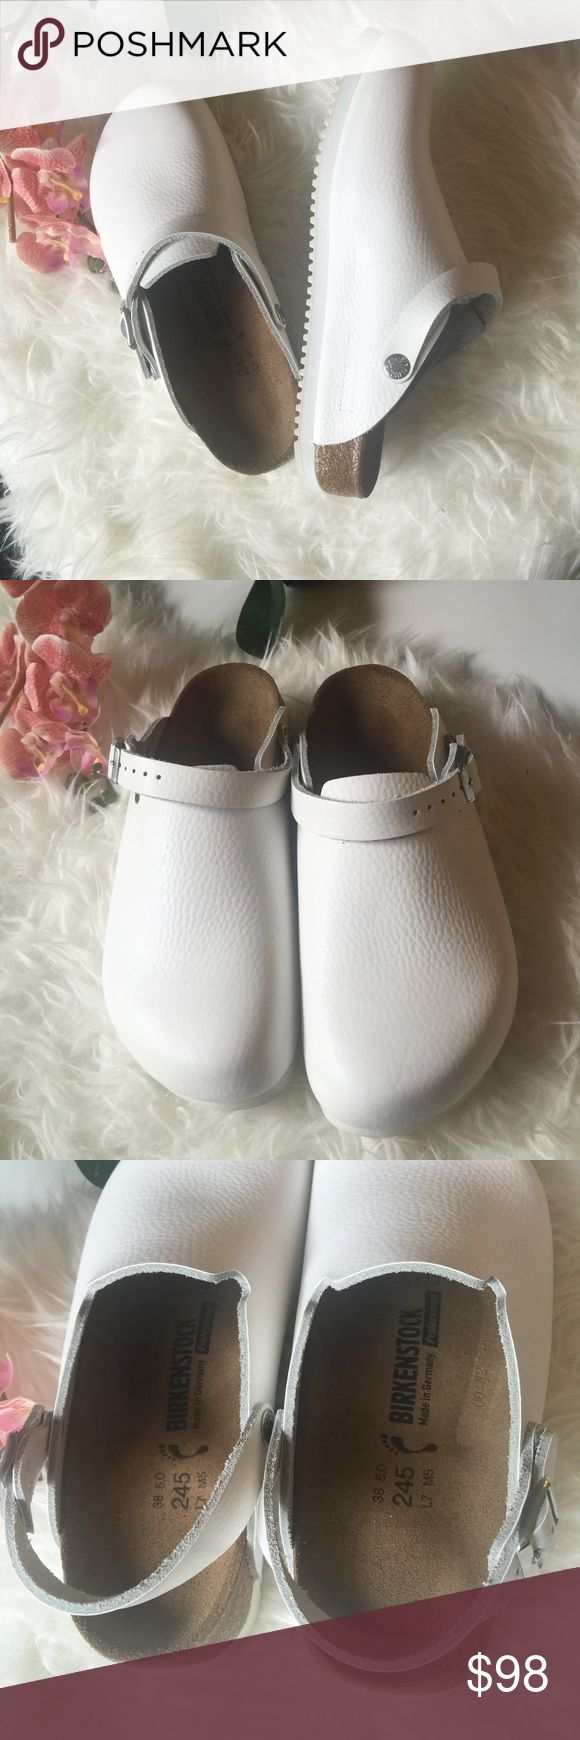 NWOB Birkenstock Philadelphia Clogs leather shoes Brand new never worn Birkenstock Philadelphia professional in white. Size 38 Euro. Narrow width. These don't come with box. Birkenstock Shoes Mules & Clogs